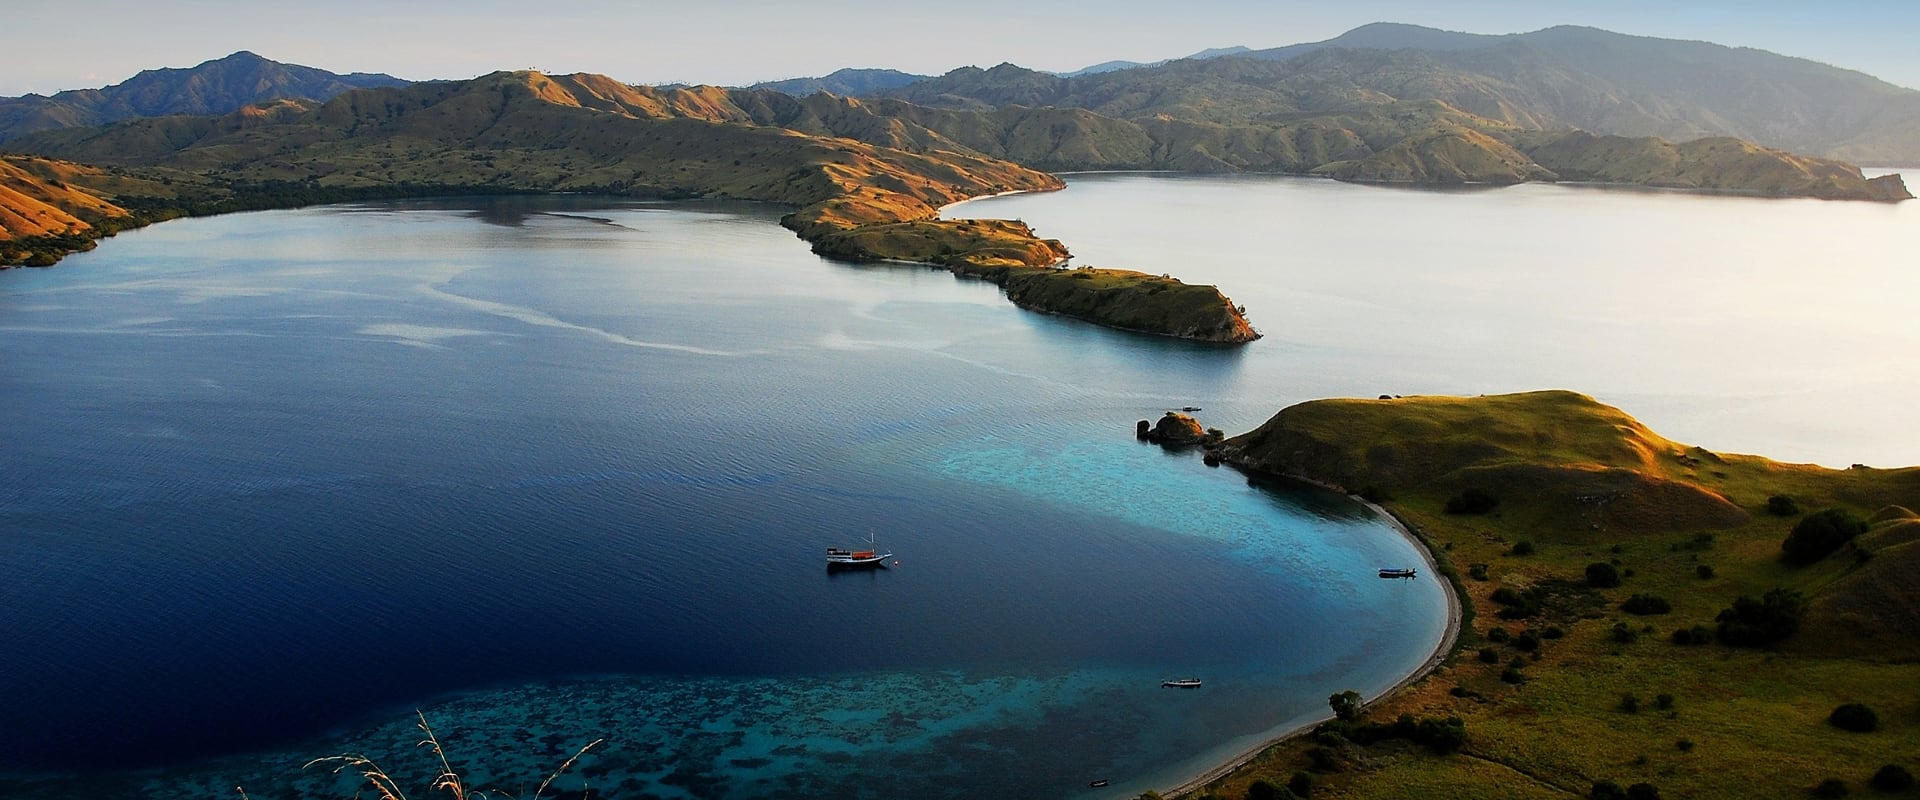 Tauchsafari Komodo Nationalpark